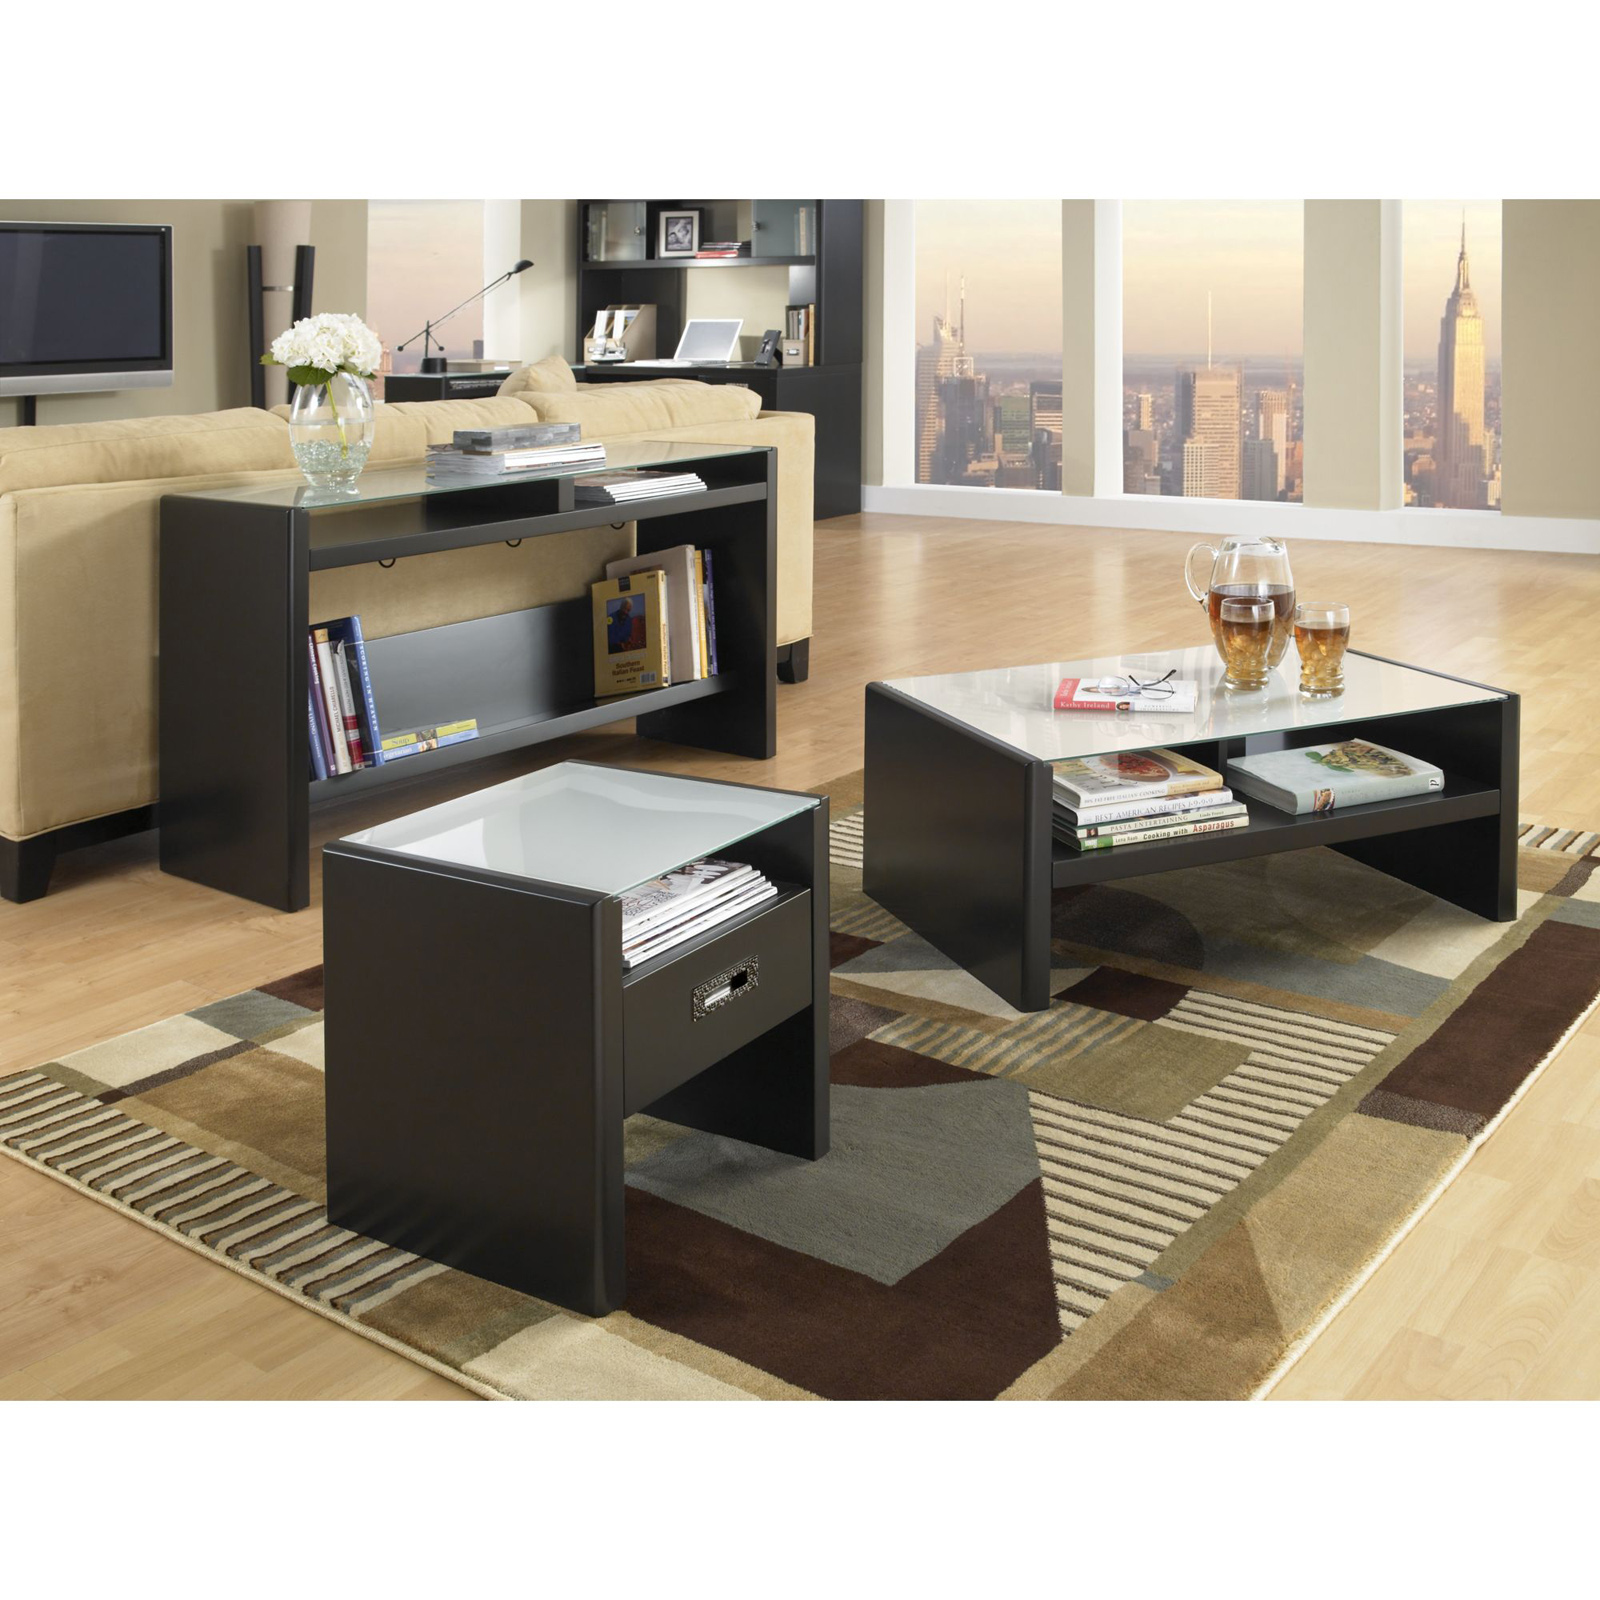 Kathy Ireland Office By Bush Furniture New York Skyline Coffee Table Set With Options Hayneedle